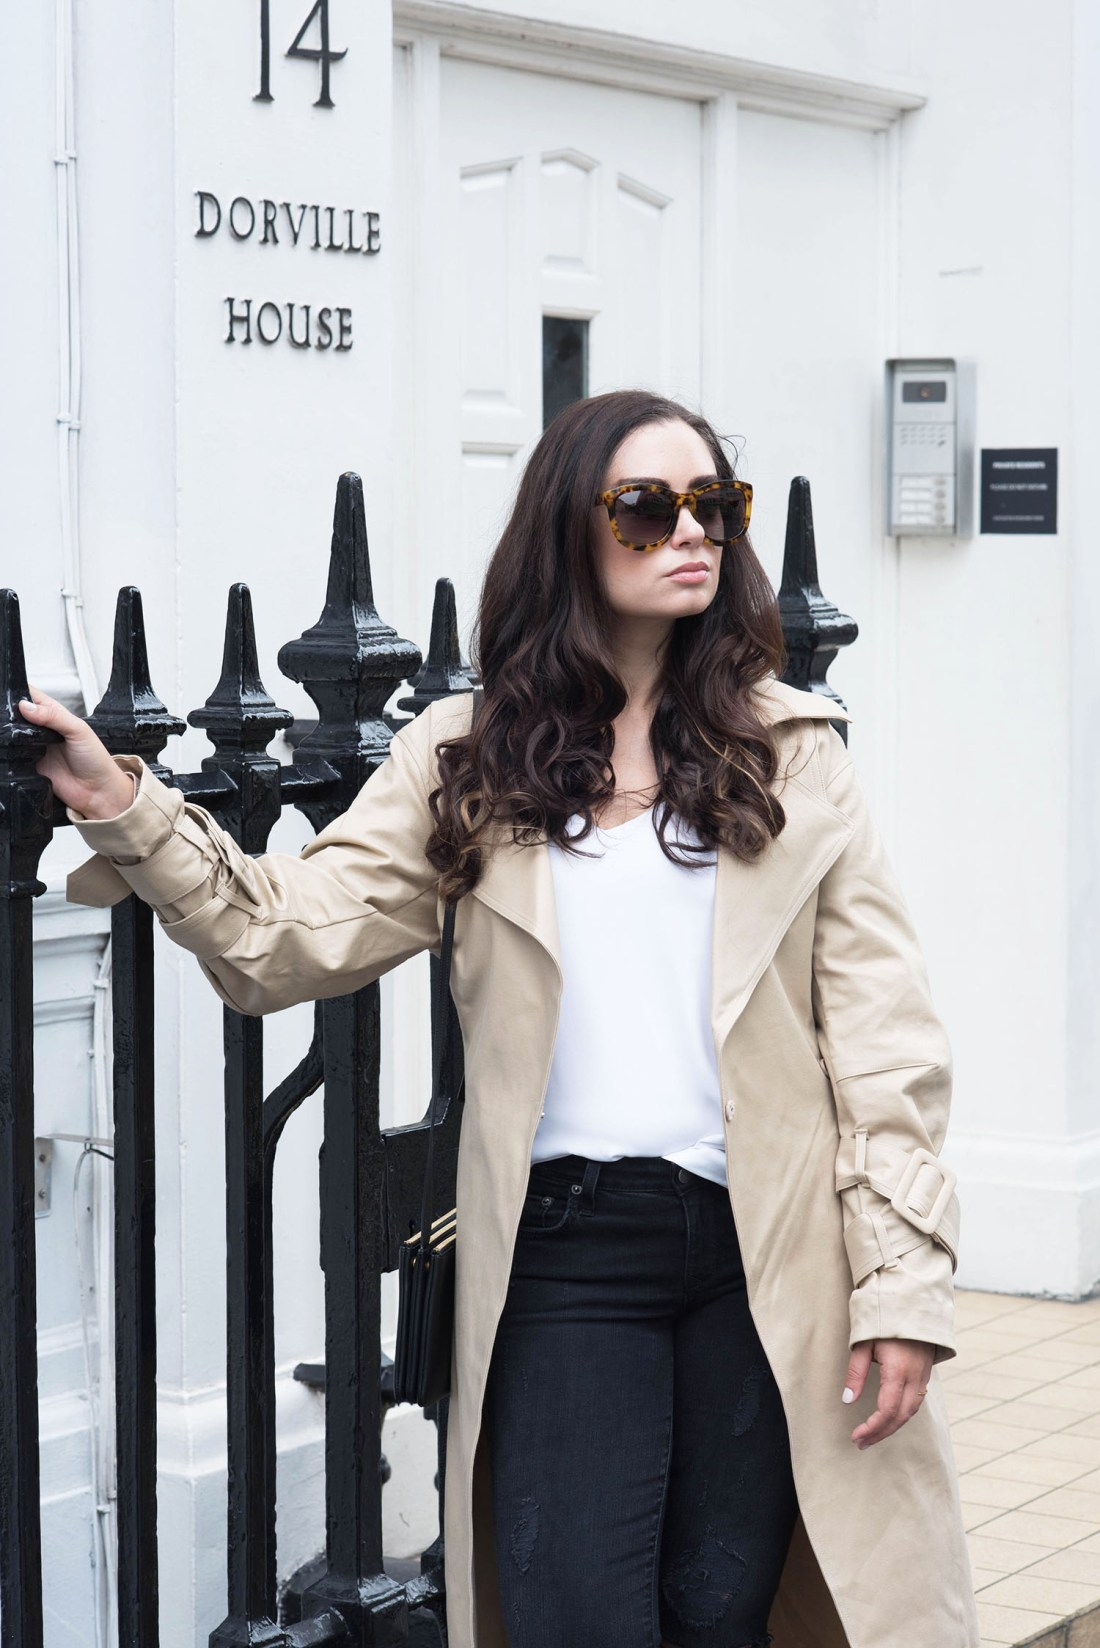 Portrait of style blogger Cee Fardoe of Coco & Vera at Dorville House in London wearing Anine Bing Los Angeles sunglasses and an Express Barcelona tank